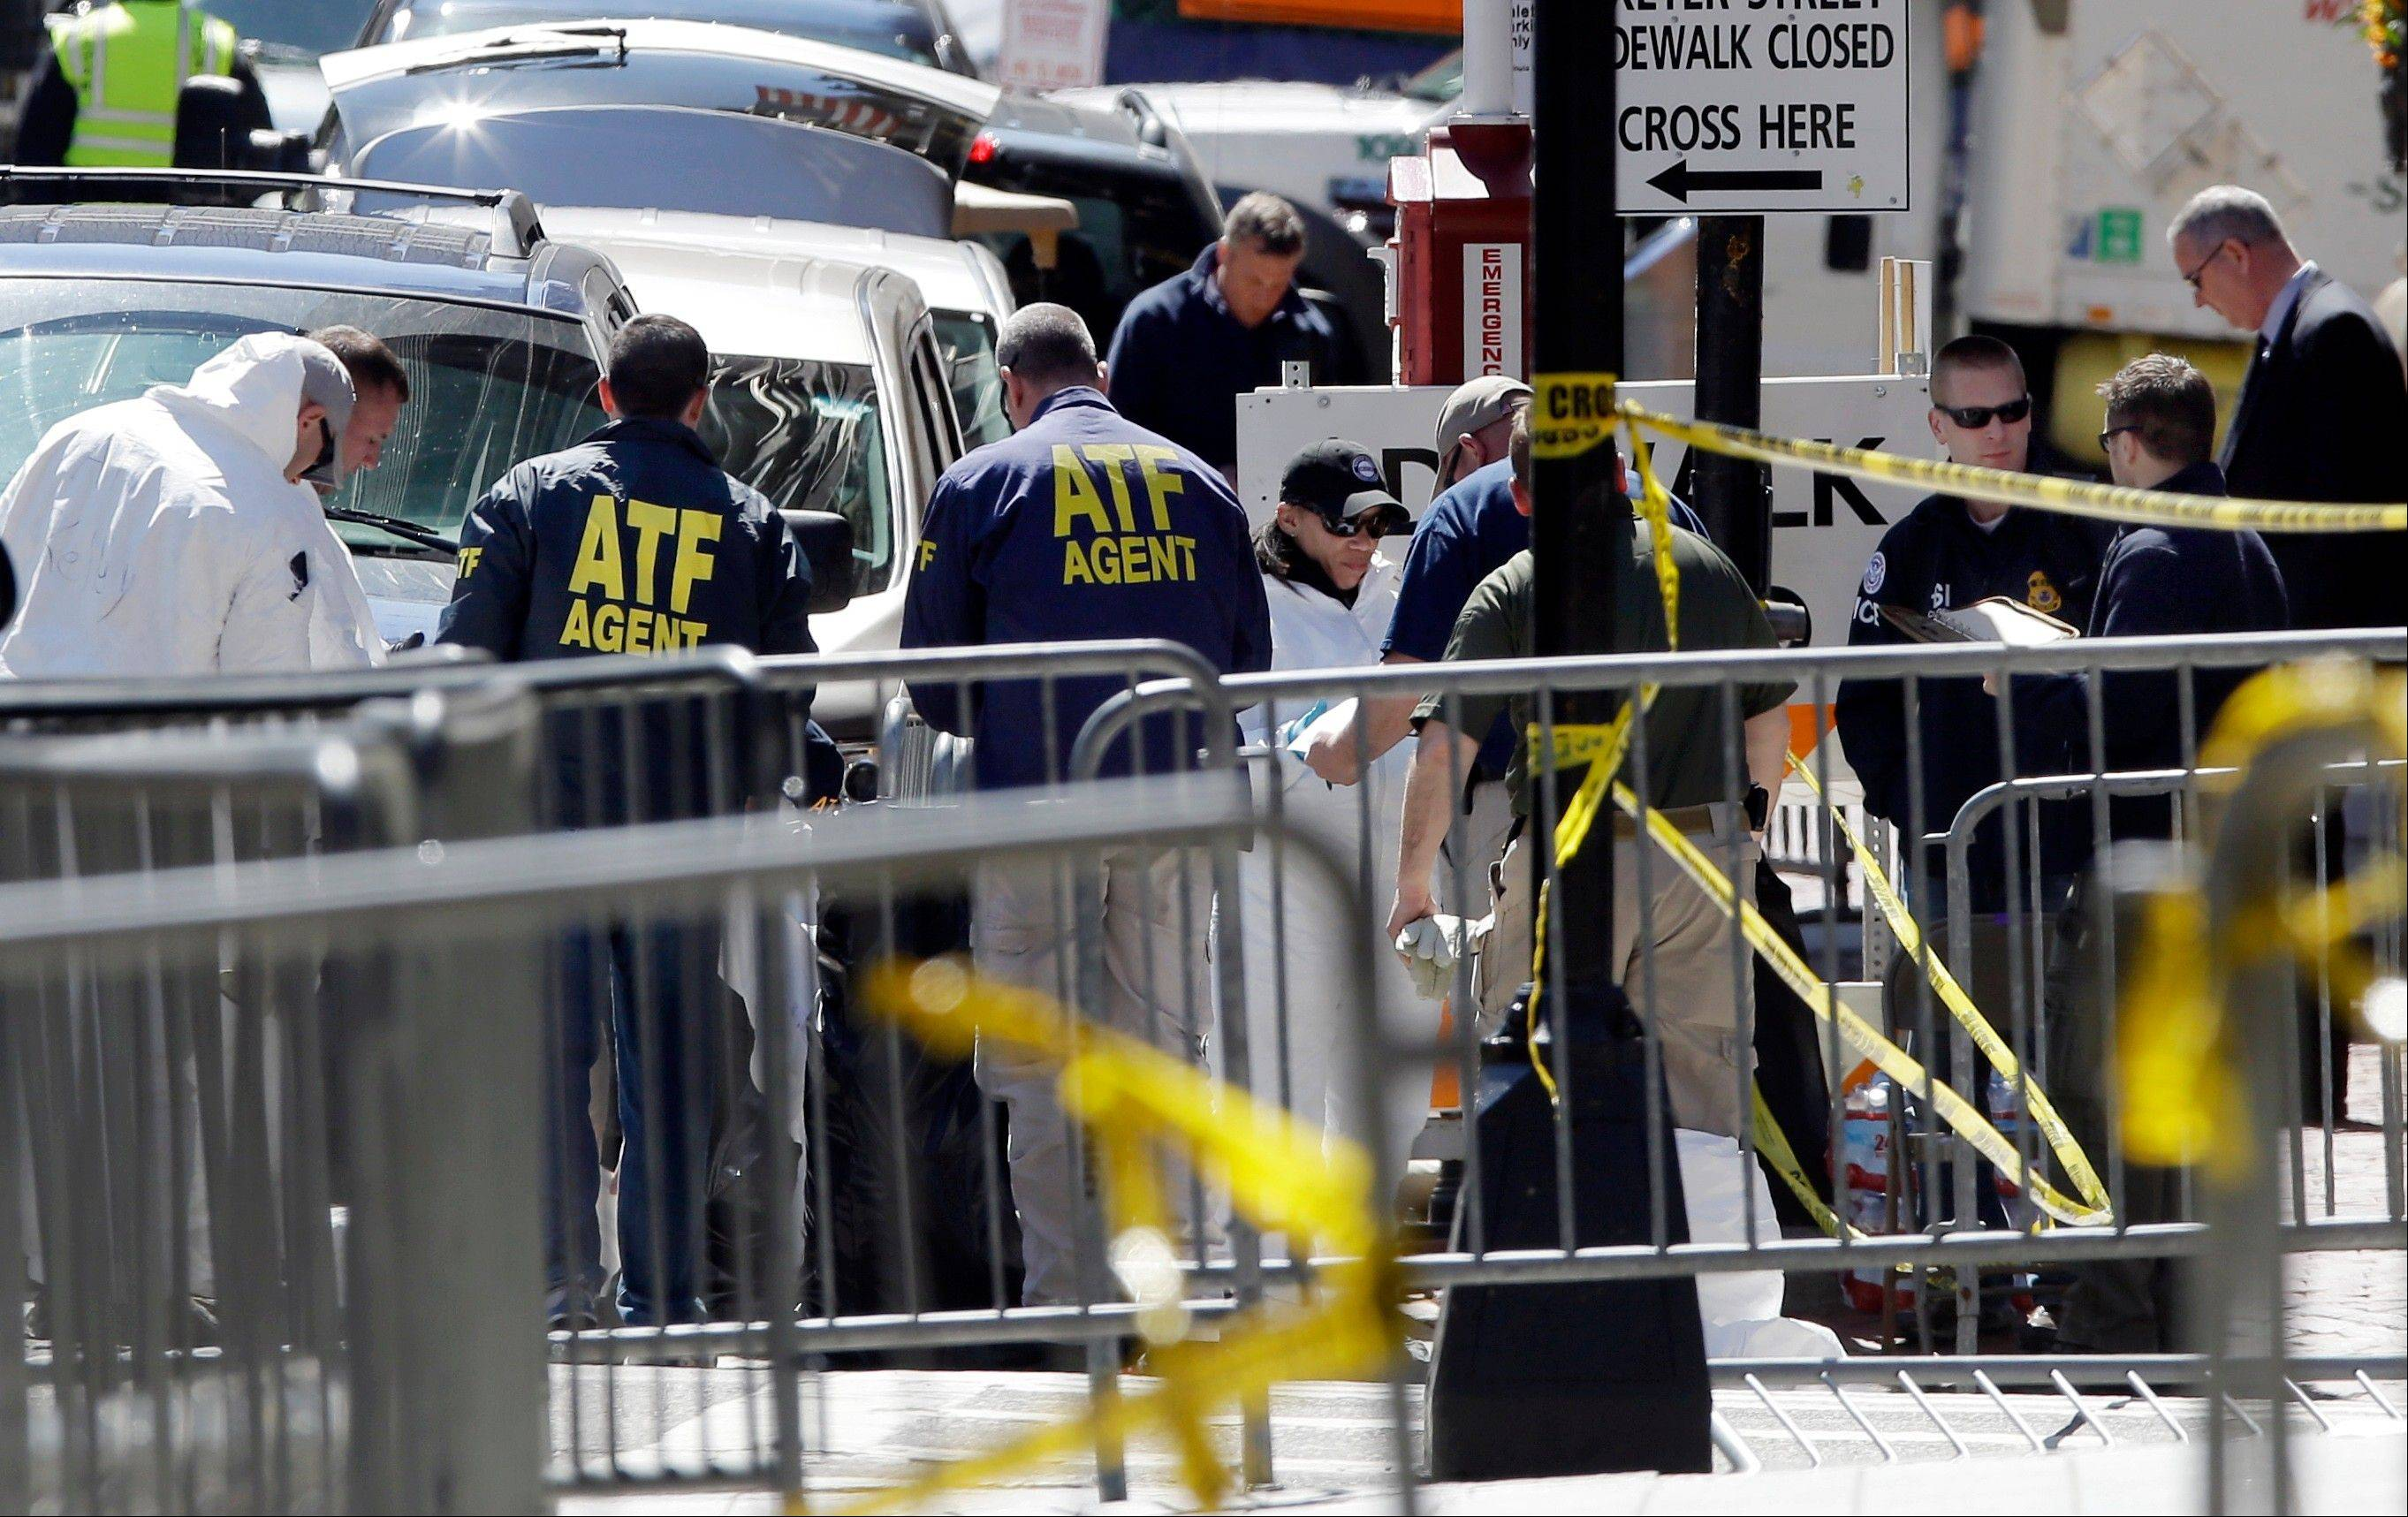 ATF agents and others examine an area of Boylston Street in Boston Thursday, April 18, 2013, as investigation of the Boston Marathon bombings continues.